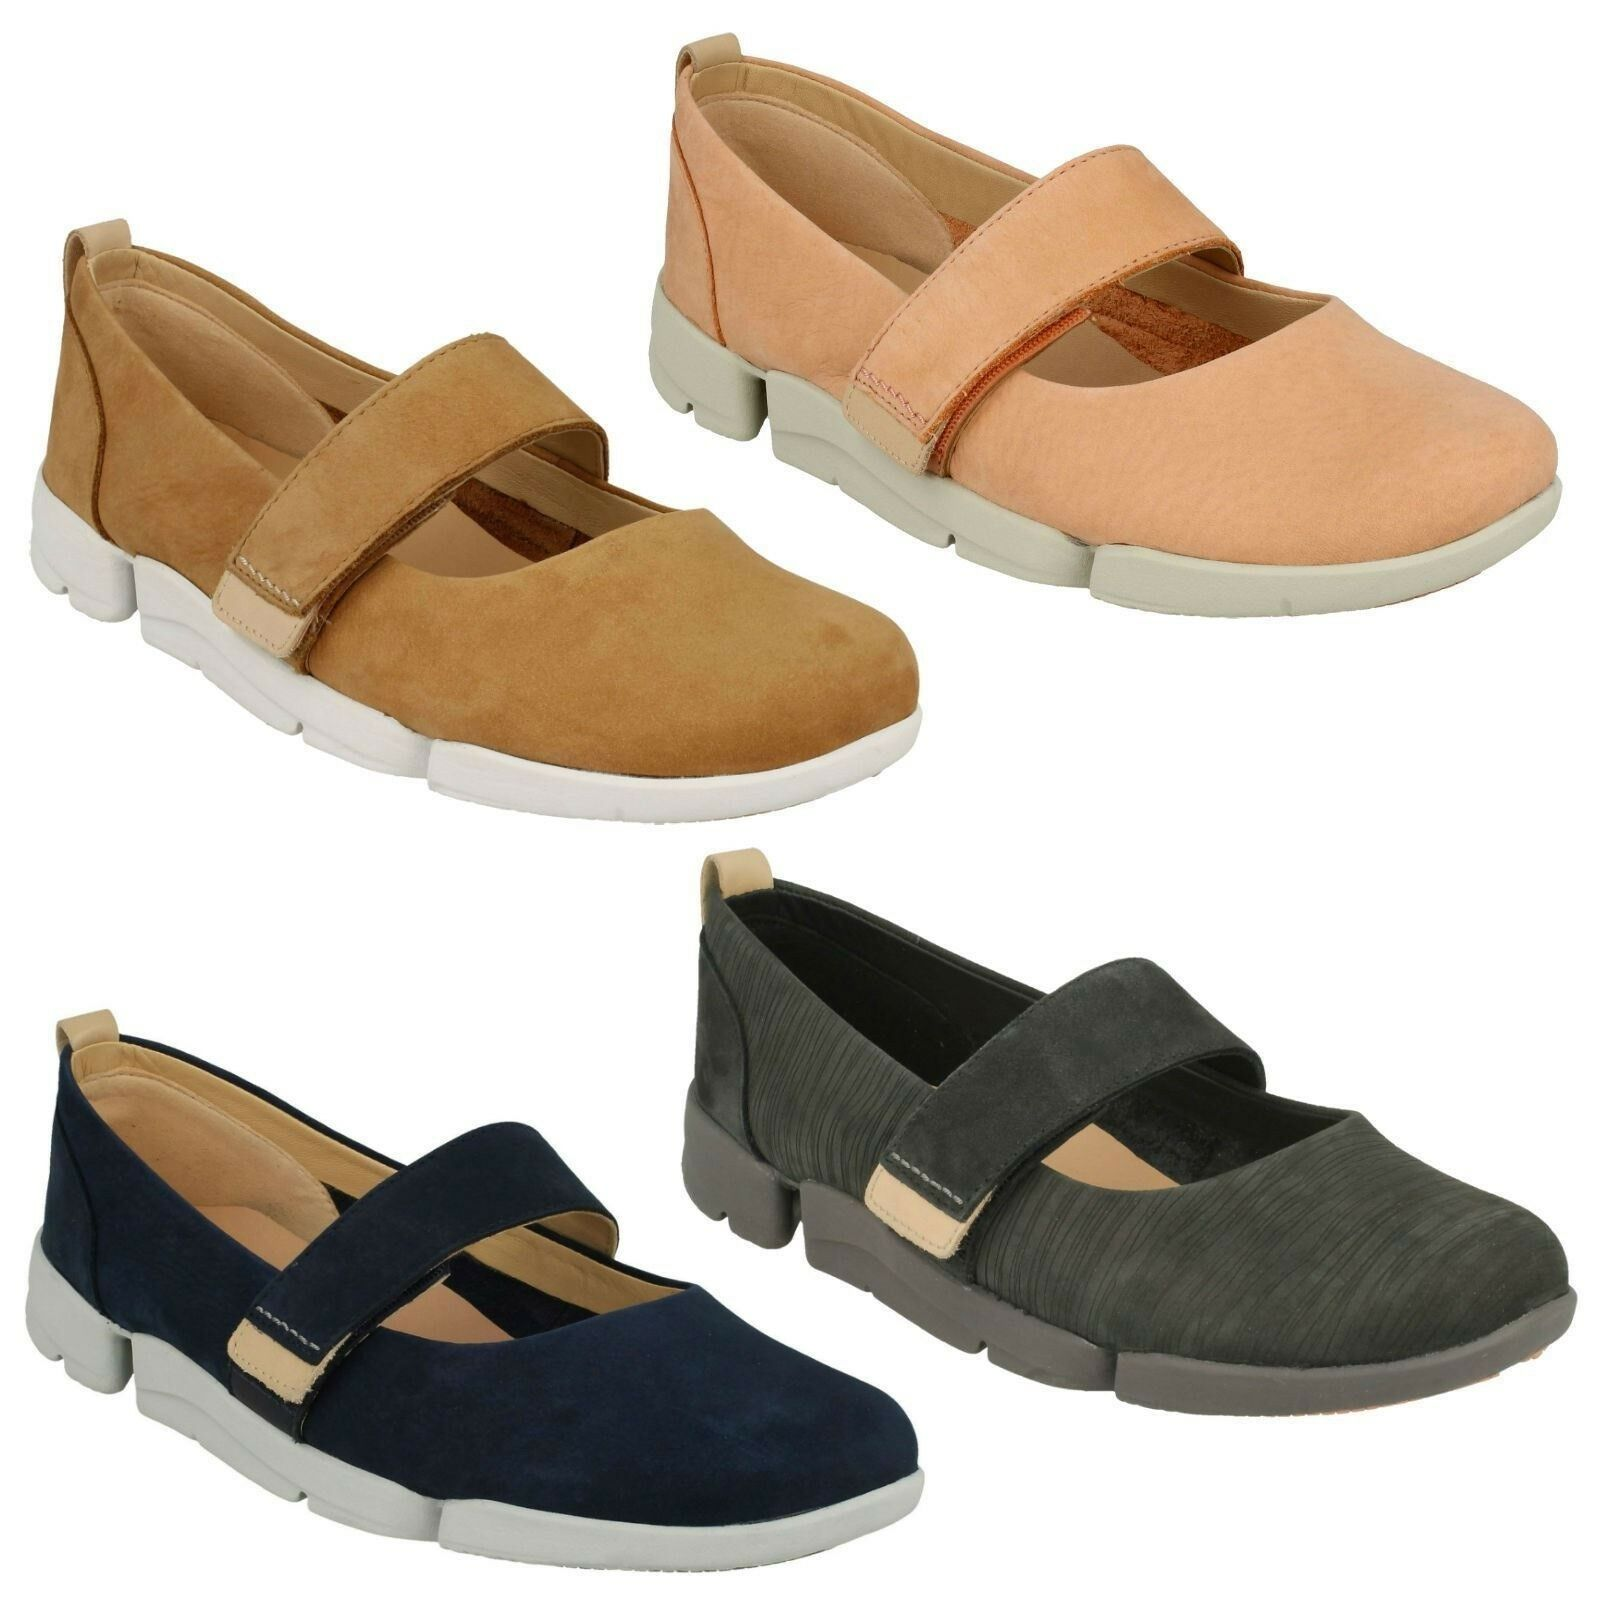 LADIES CLARKS FLAT NUBUCK LEATHER CASUAL LIGHTWEIGHT RIPTAPE FLAT CLARKS SHOES TRI CARRIE d5811d